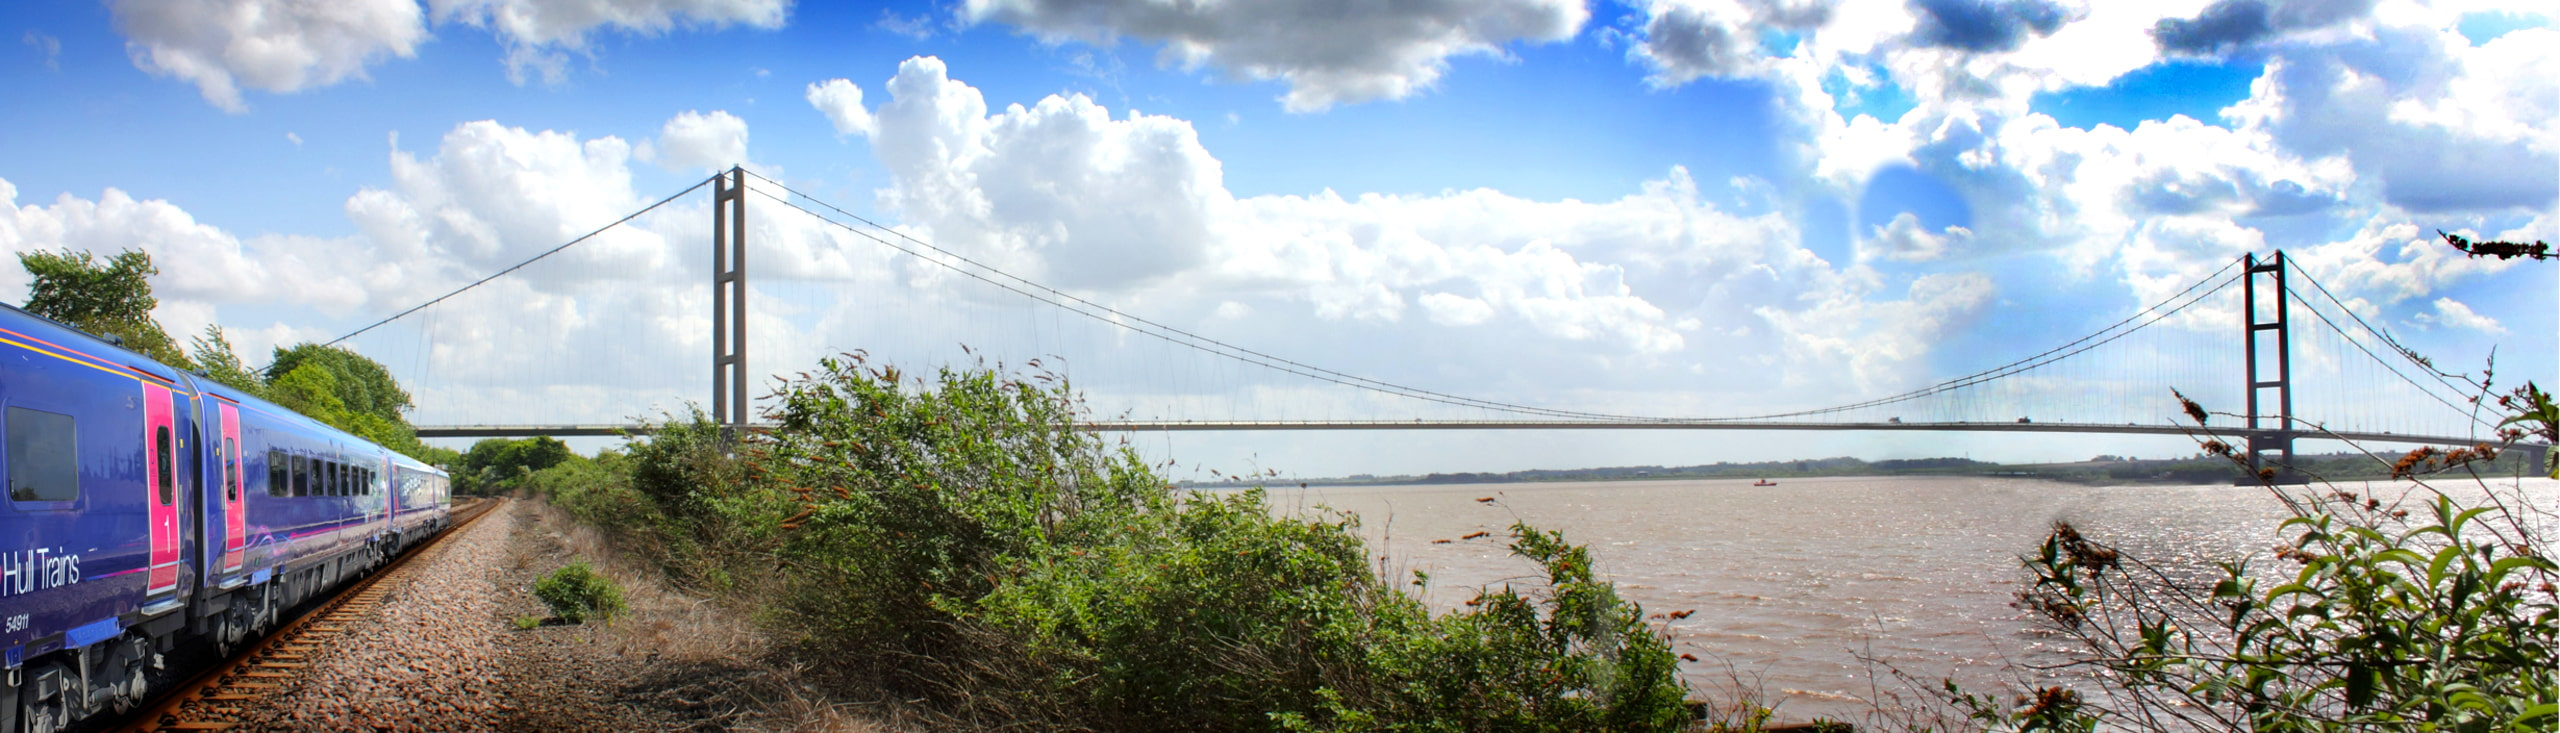 Hull Trains Humber Bridge Brough East Yorkshire